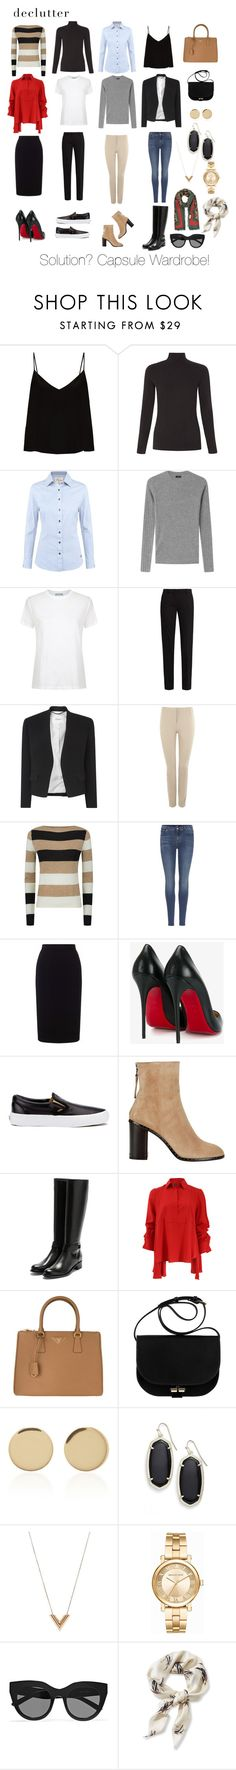 """""""Decluttering goal!"""" by christawallace ❤ liked on Polyvore featuring Raey, DUBARRY, Joseph, Vince, Etro, L.K.Bennett, Phase Eight, MaxMara, 7 For All Mankind and Roland Mouret"""